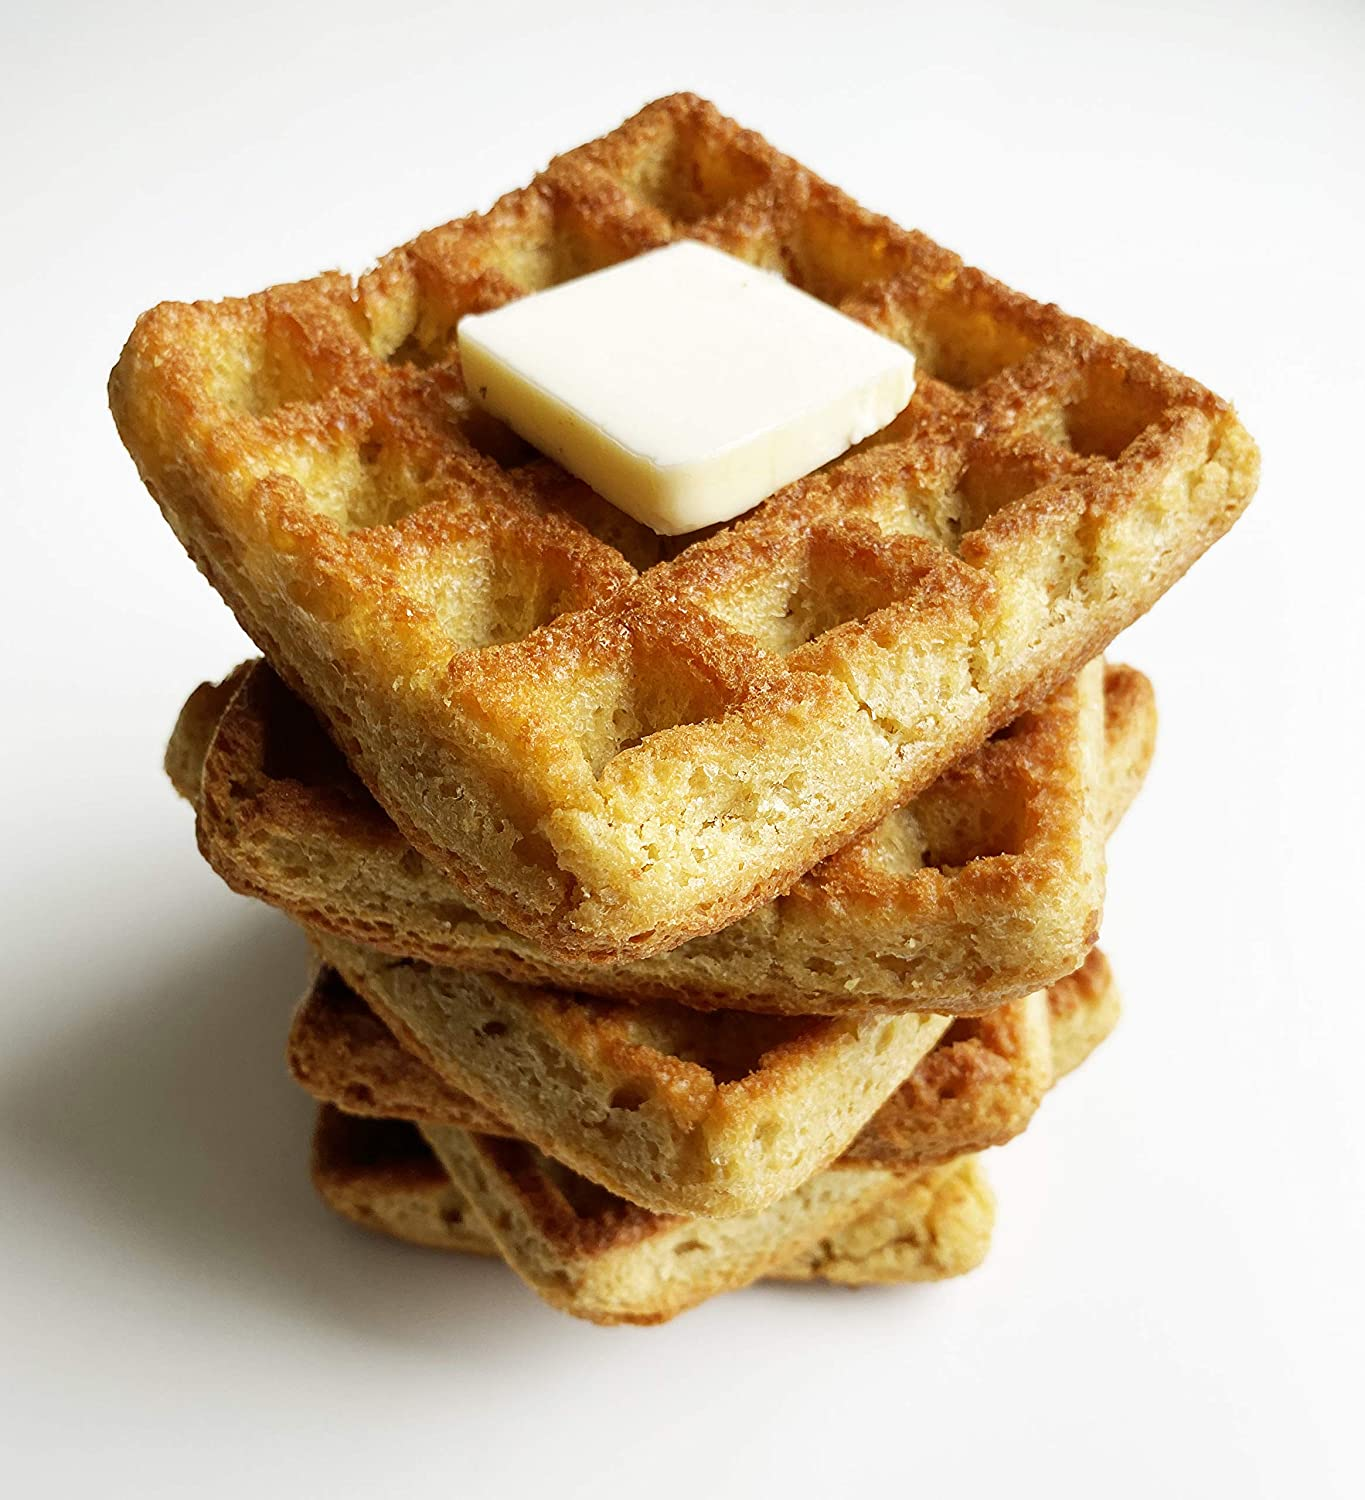 Low Carb Waffle Cakes - Fresh Baked - LC Foods - All Natural - No Sugar - High Protein - Diabetic Friendly - Low Carb Waffles